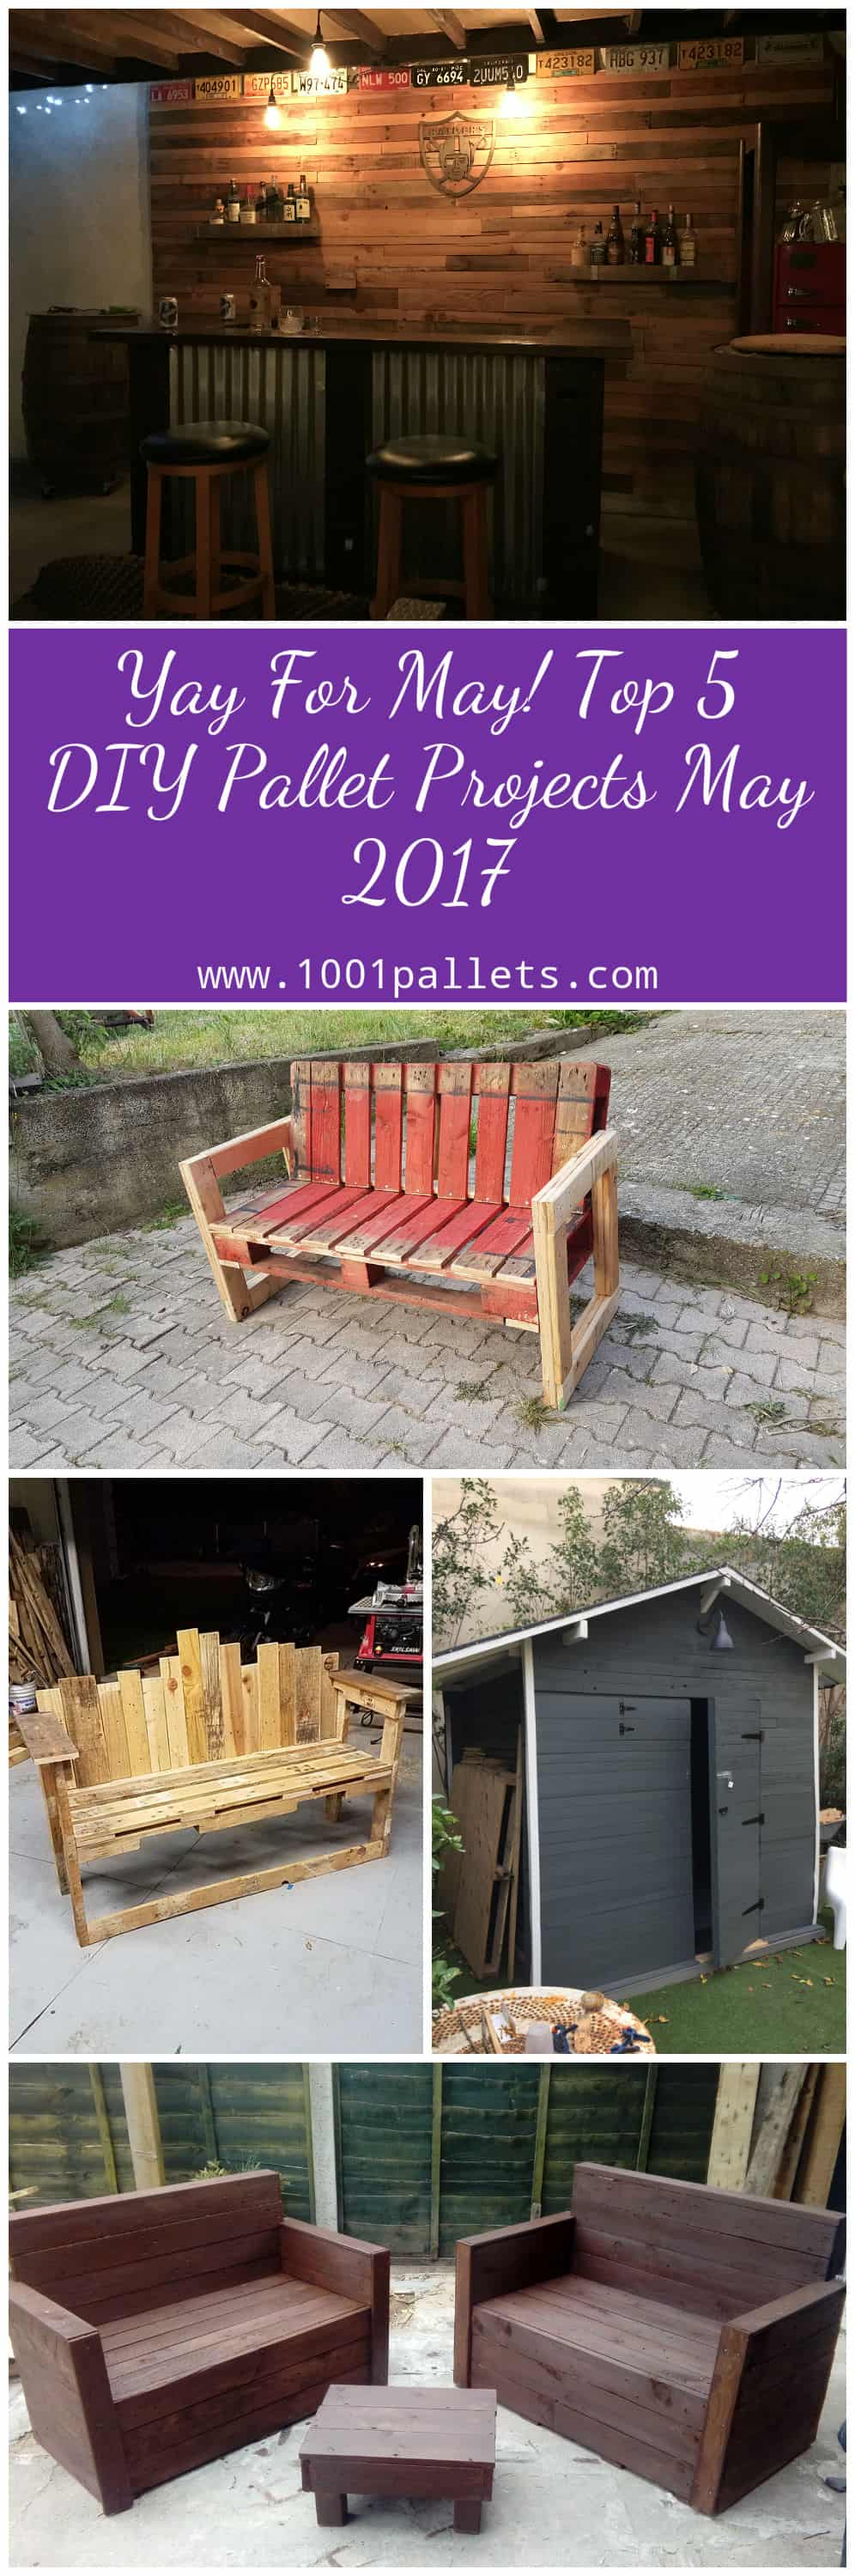 Excellent 4 Methods To Remove A Stripped Or Broken Screw 1001 Pallets Spiritservingveterans Wood Chair Design Ideas Spiritservingveteransorg